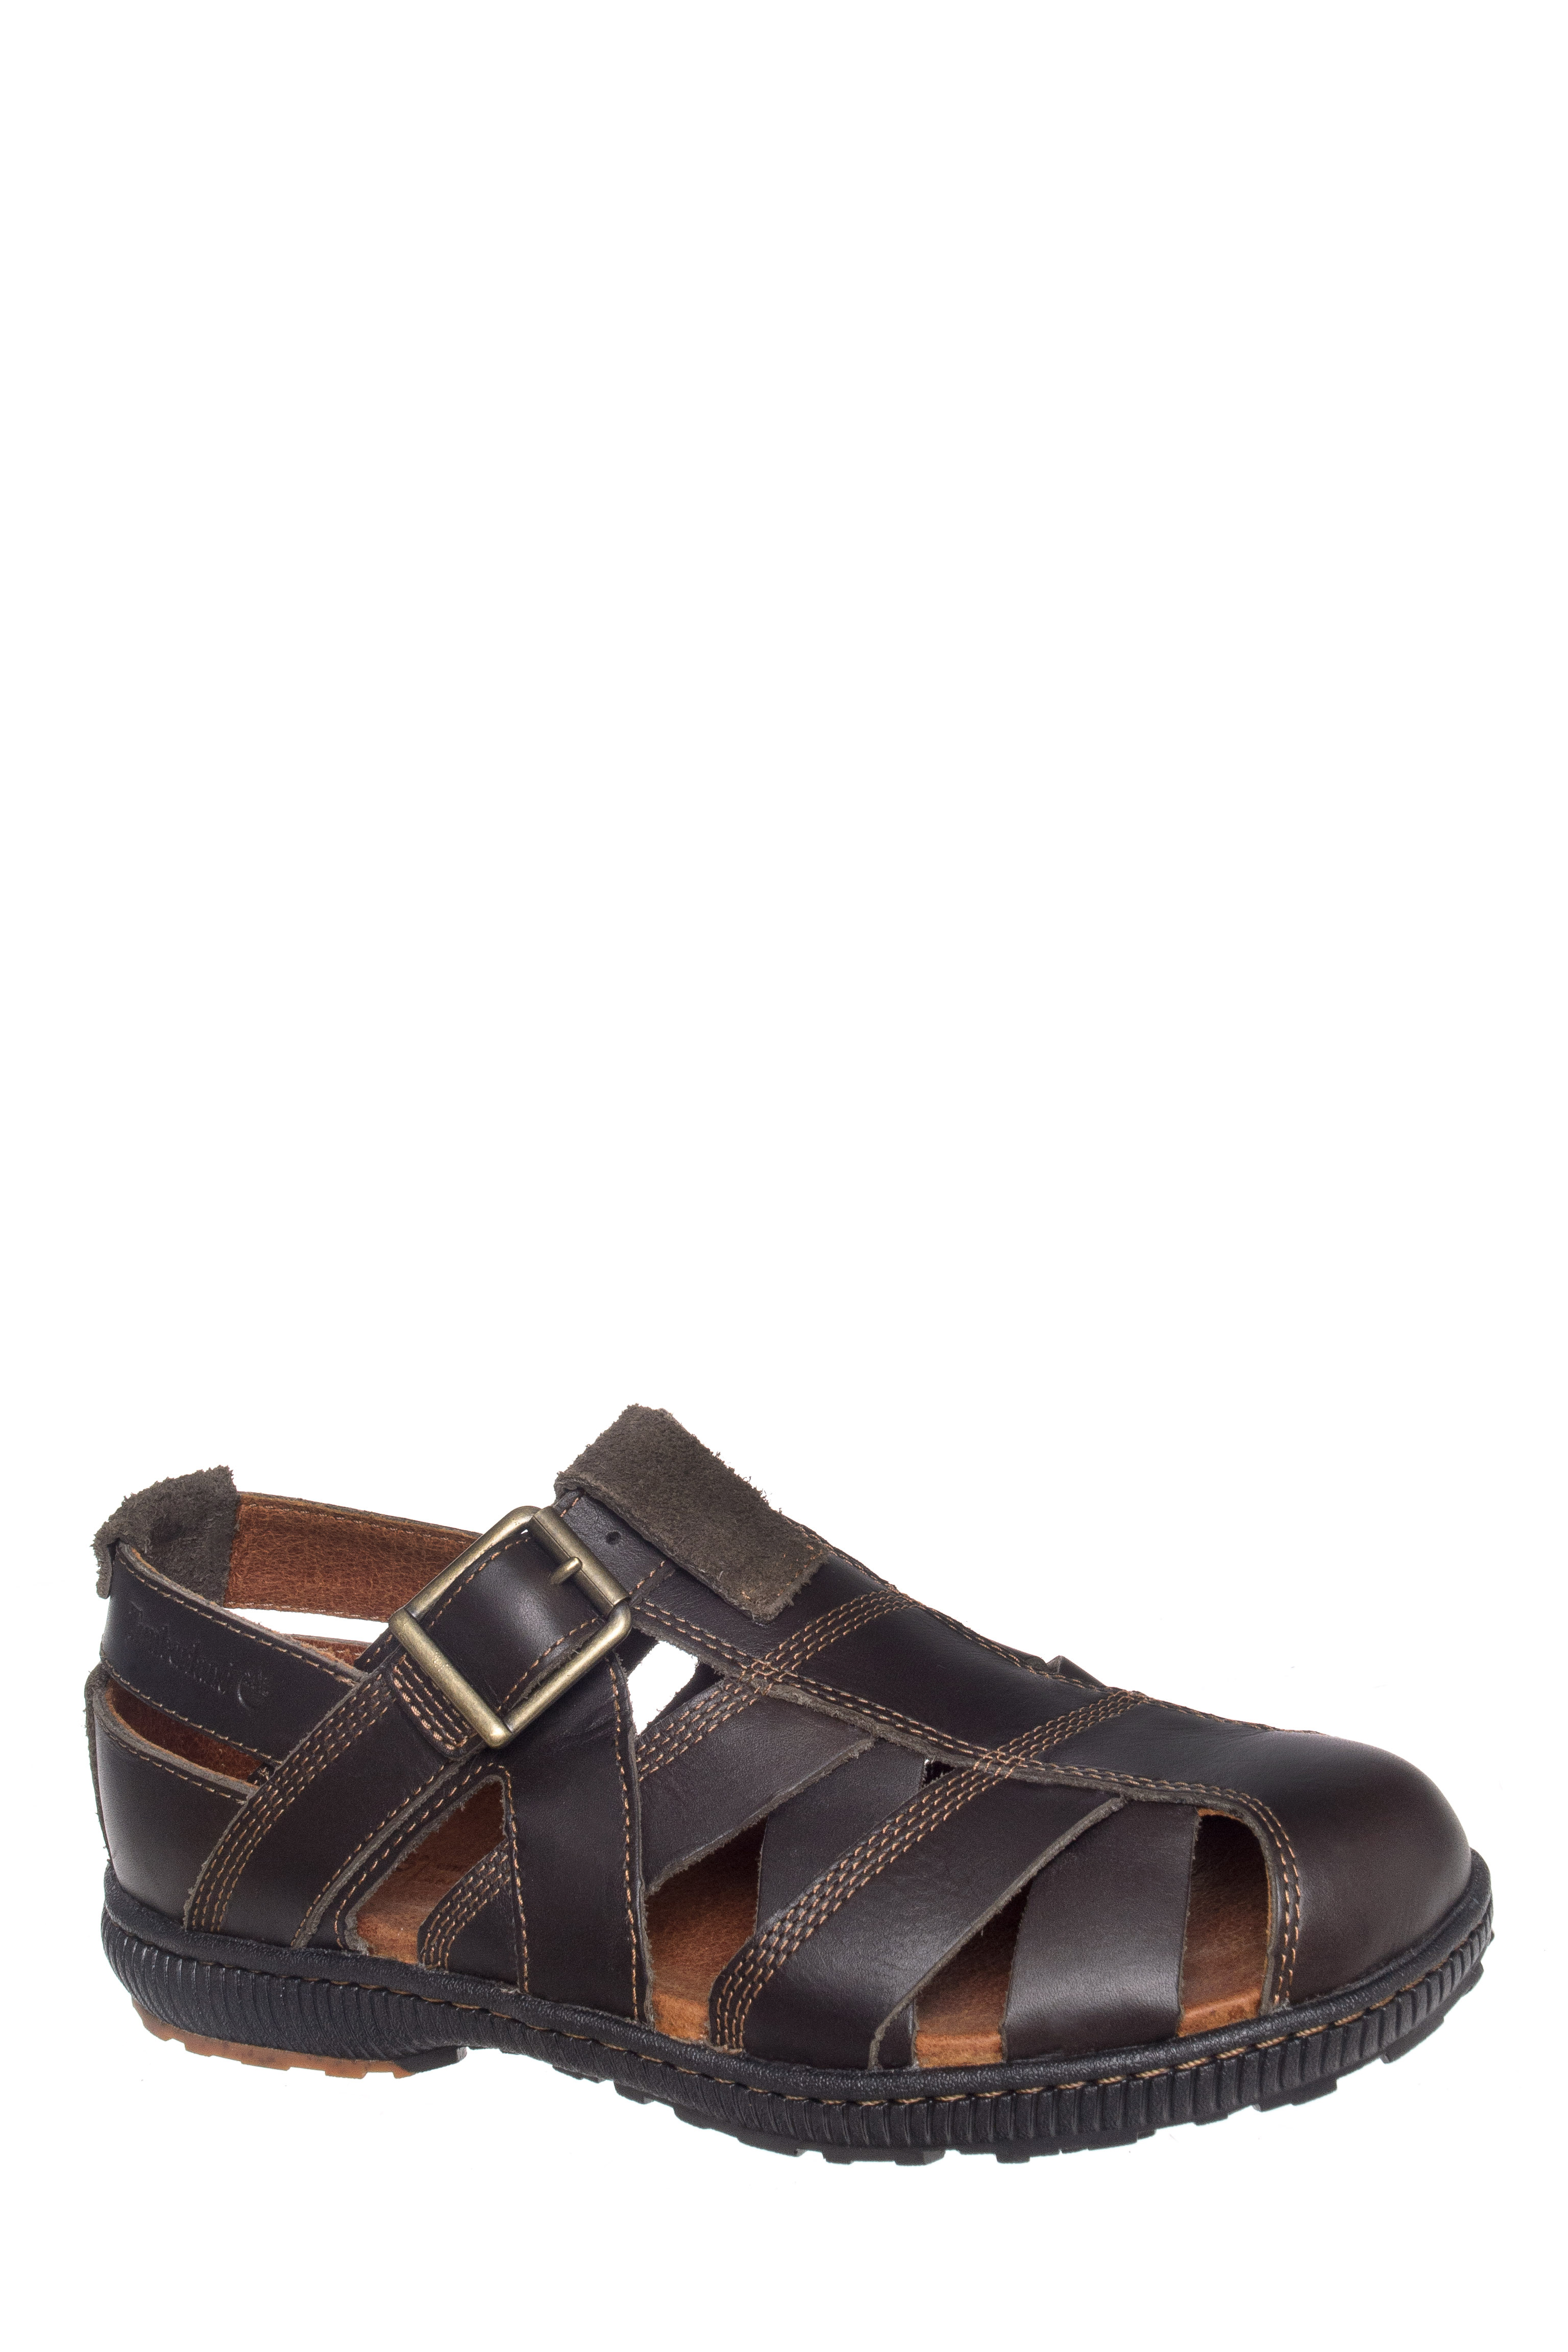 Sandals: Timberland Earthkeepers Men's Hollbrook Fisherman